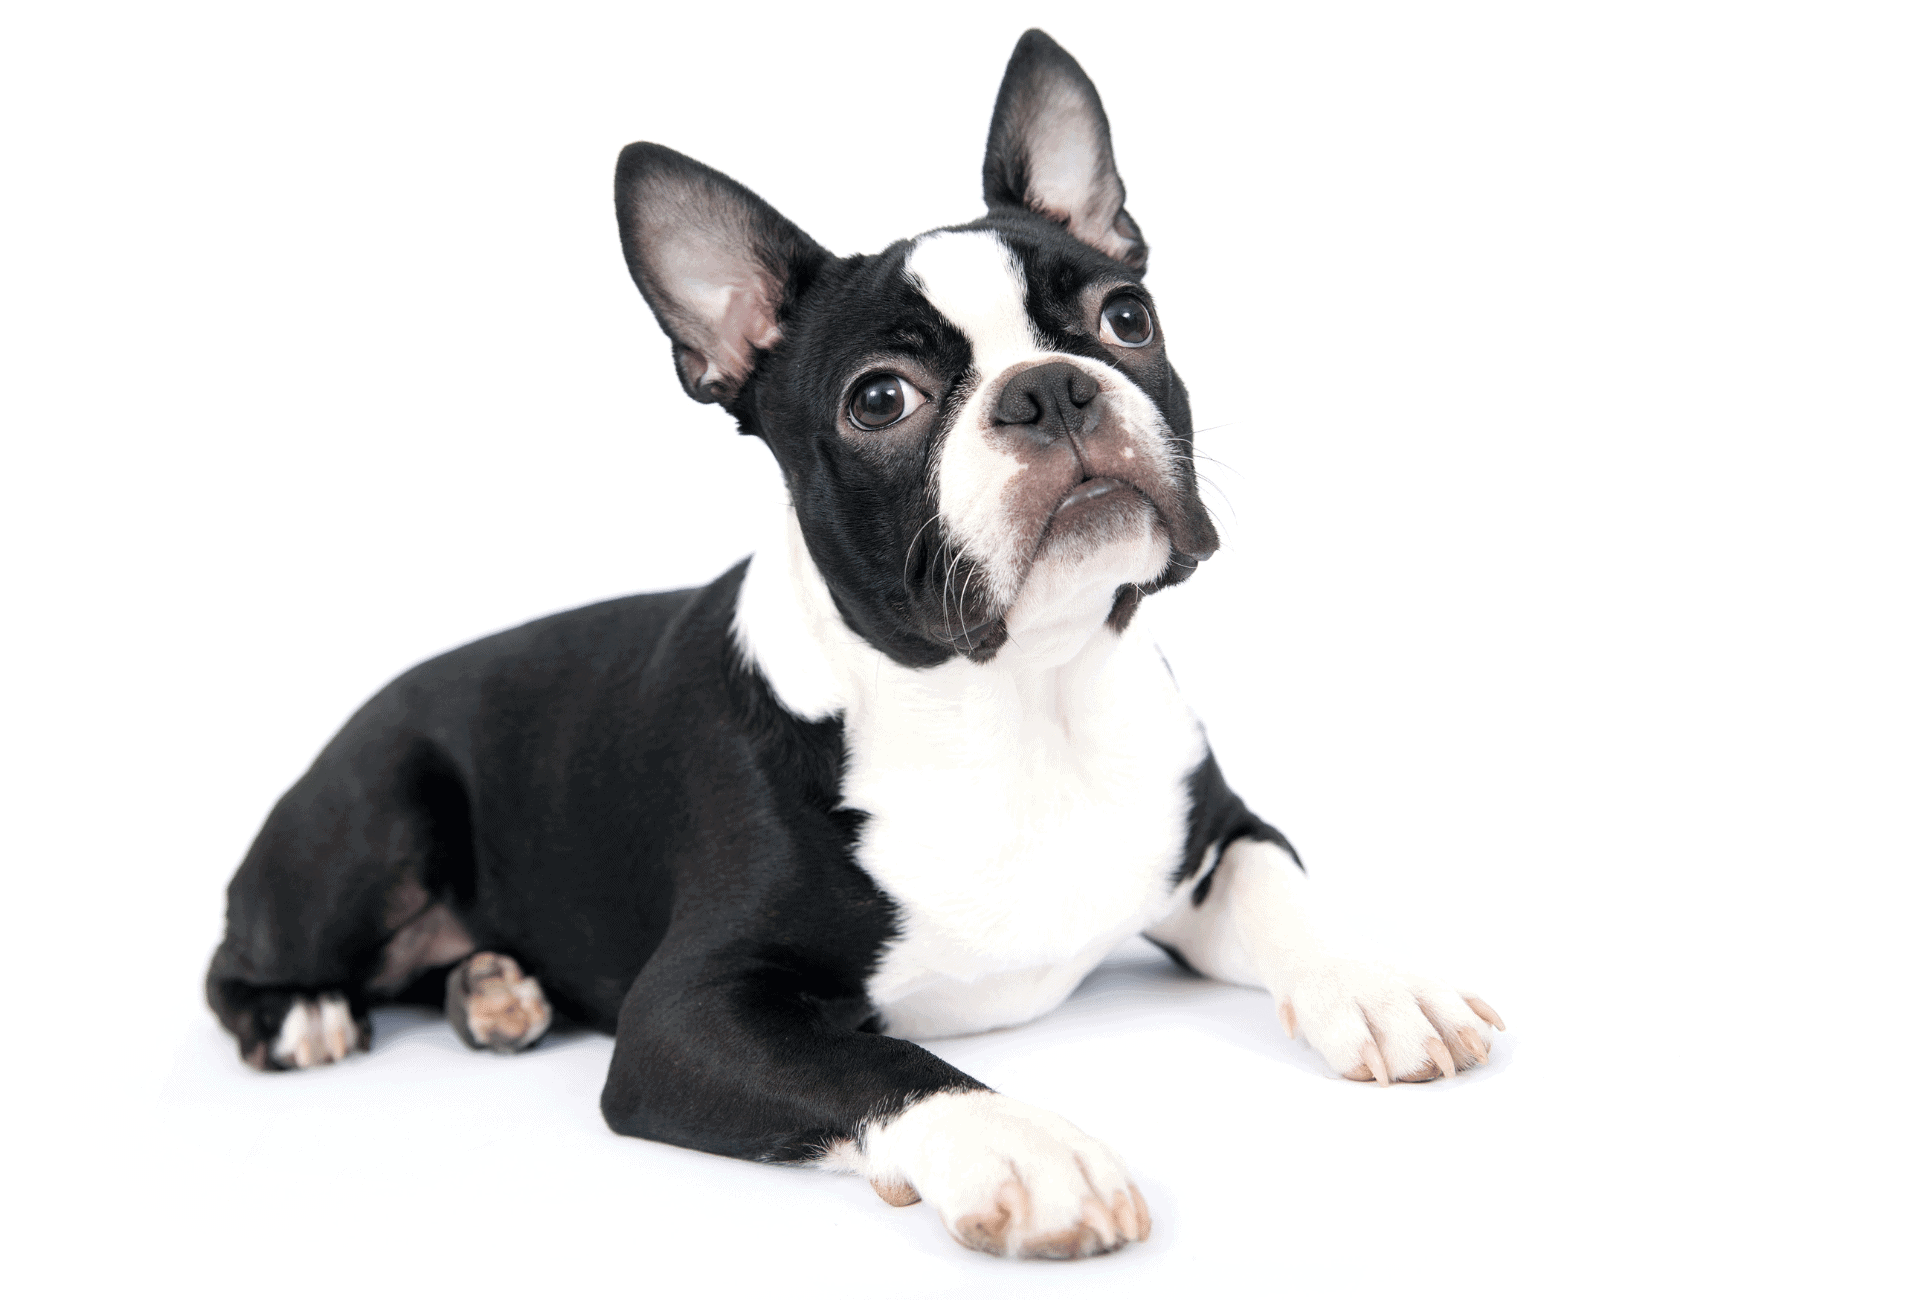 Black and white Boston Terrier on the floor in front of a white background